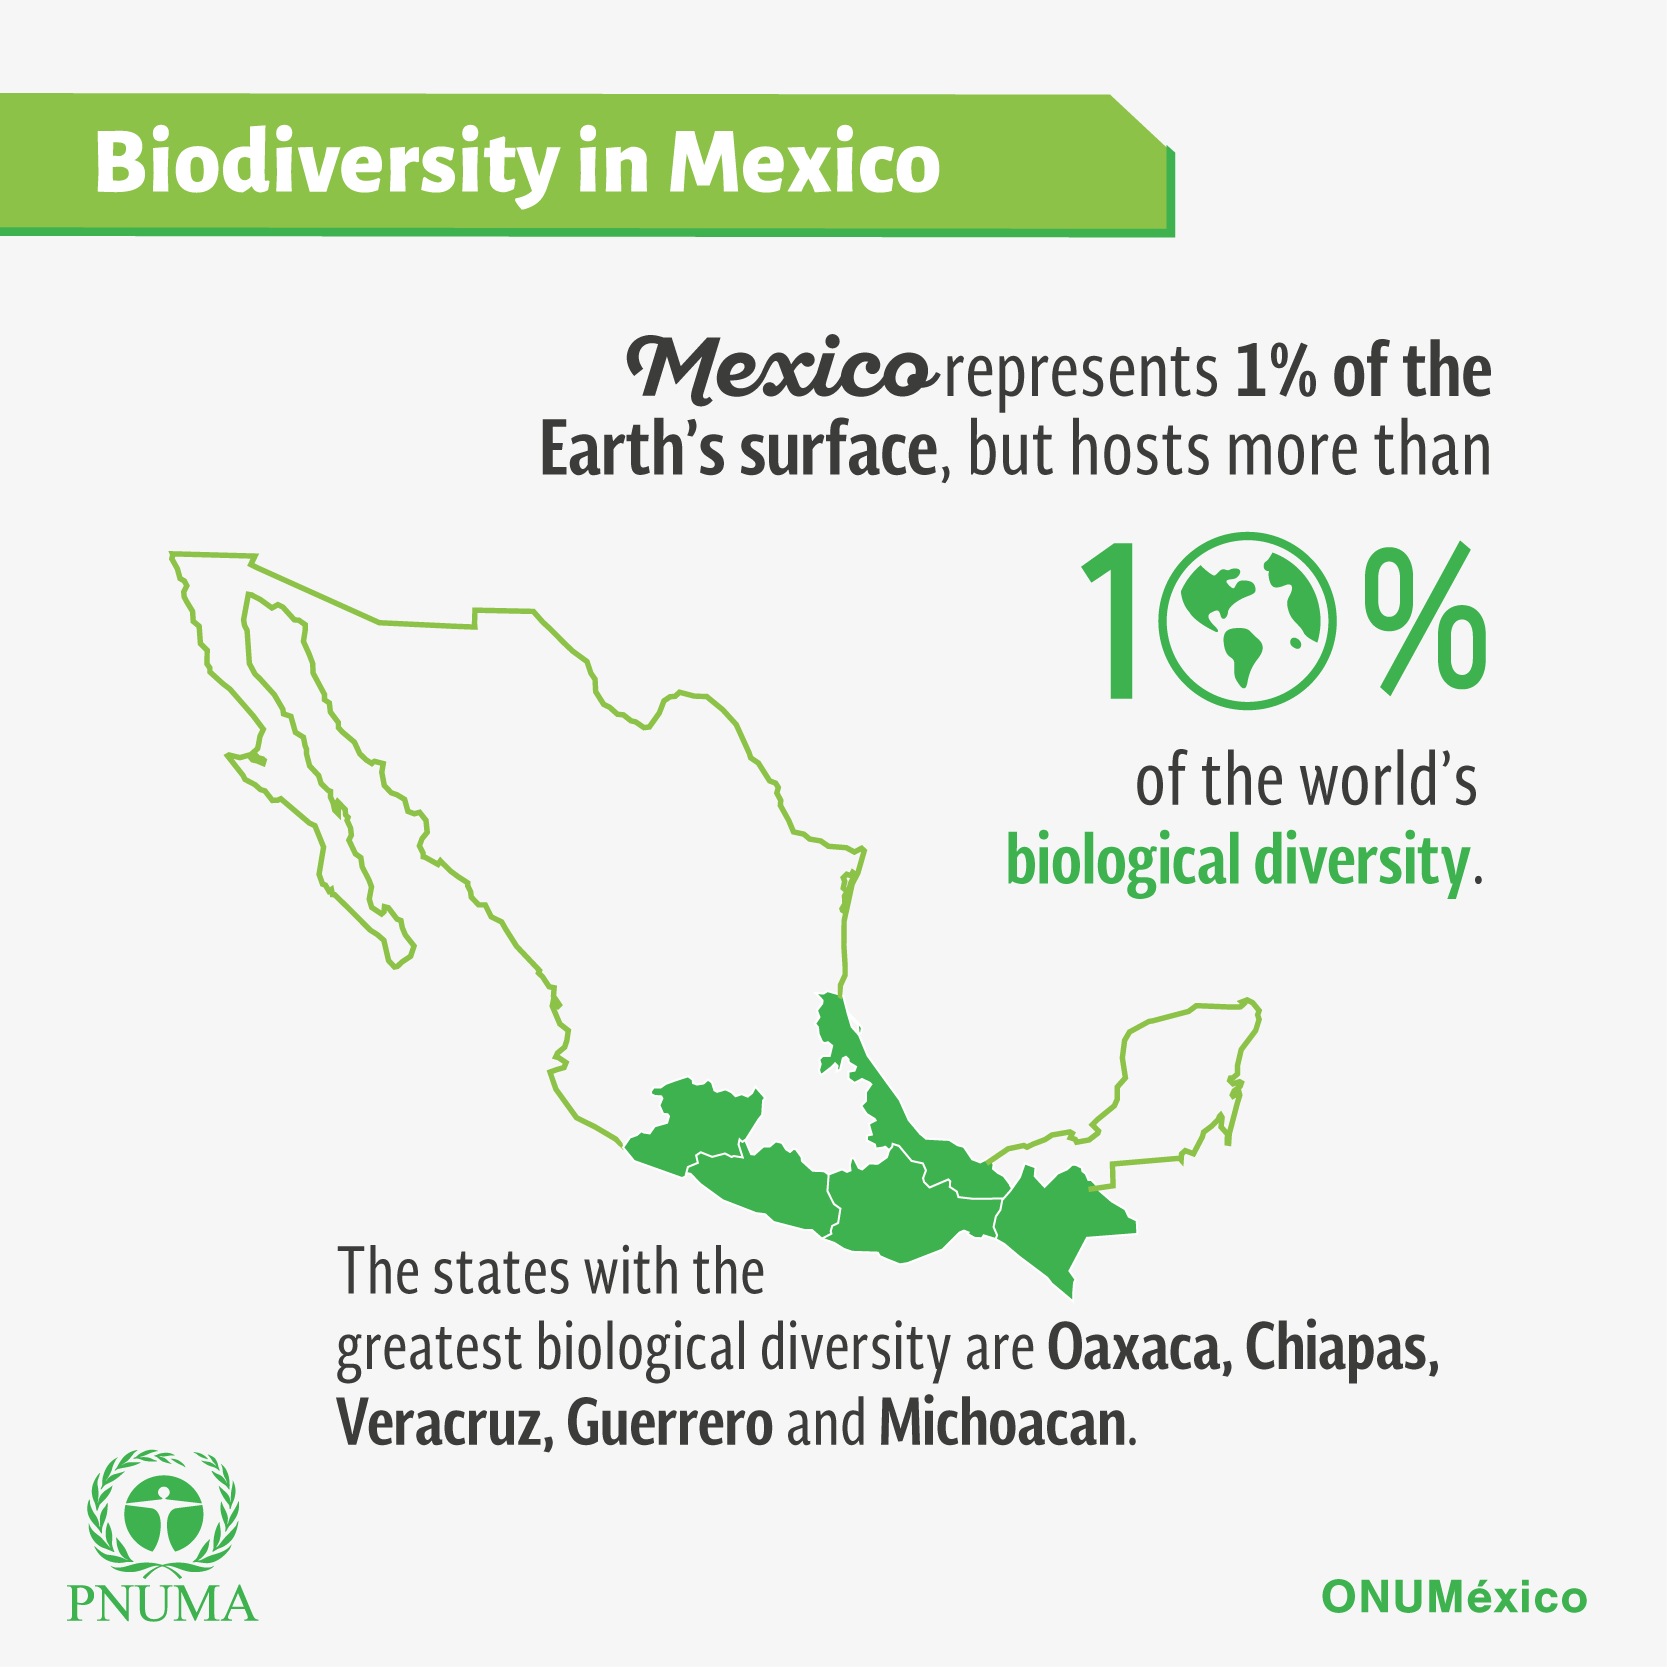 biodiversity of teeb the mexican population directly or indirectly depends on nature through agriculture fisheries and or tourism among others